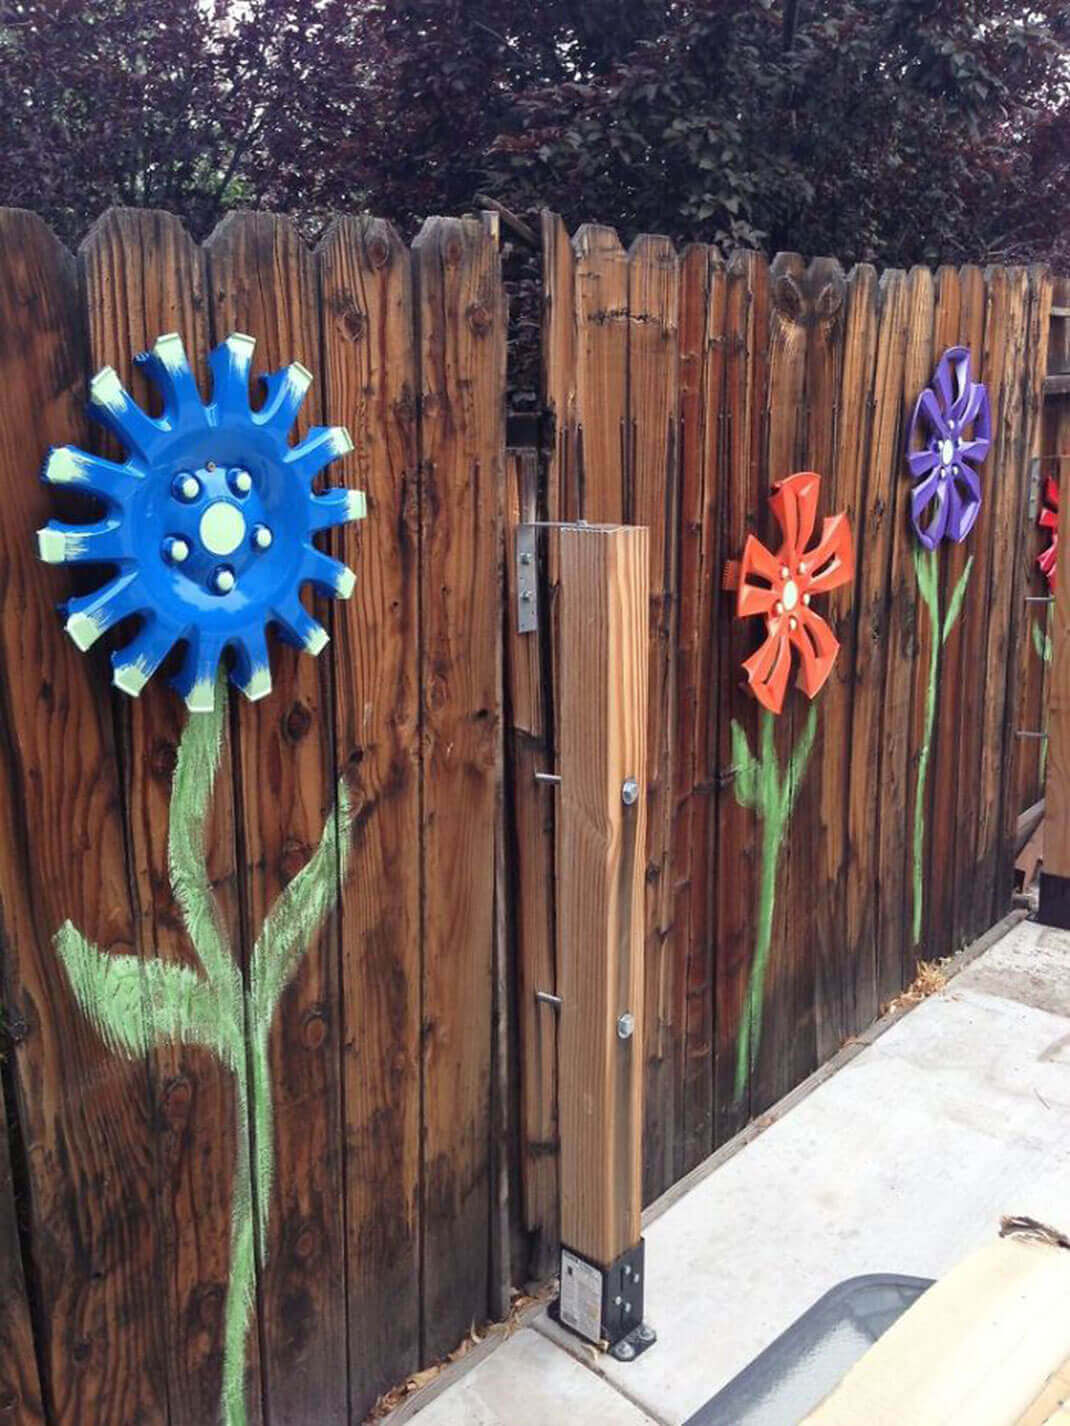 Cute Flowers made of Car Hubcaps